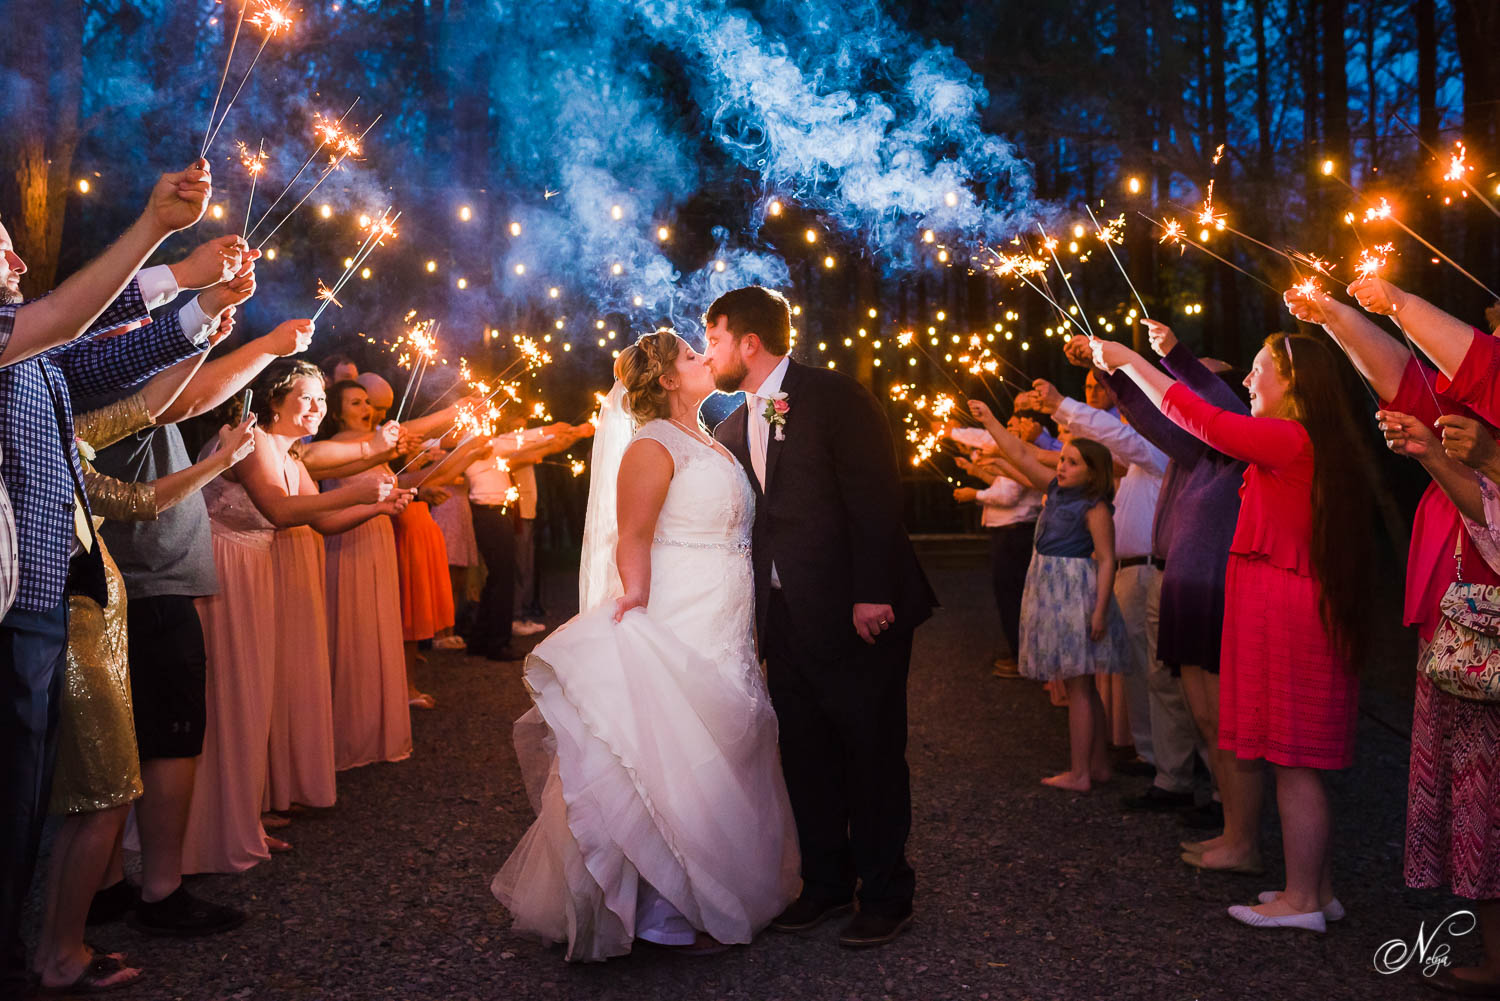 wedding sparkler exit with long sparklers at the Forest Ceremony site at Hiwassee River weddings in Delano TN